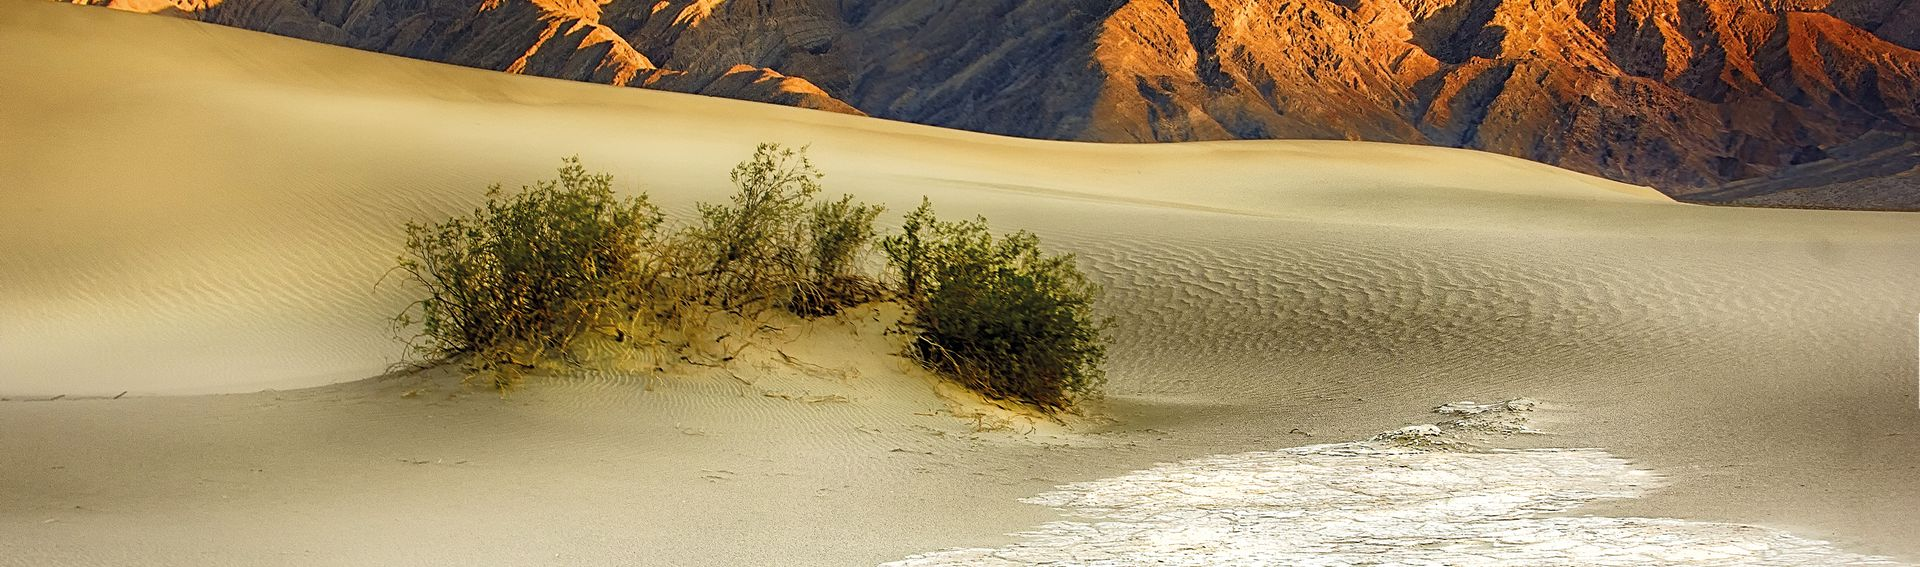 Parc national Death Valley